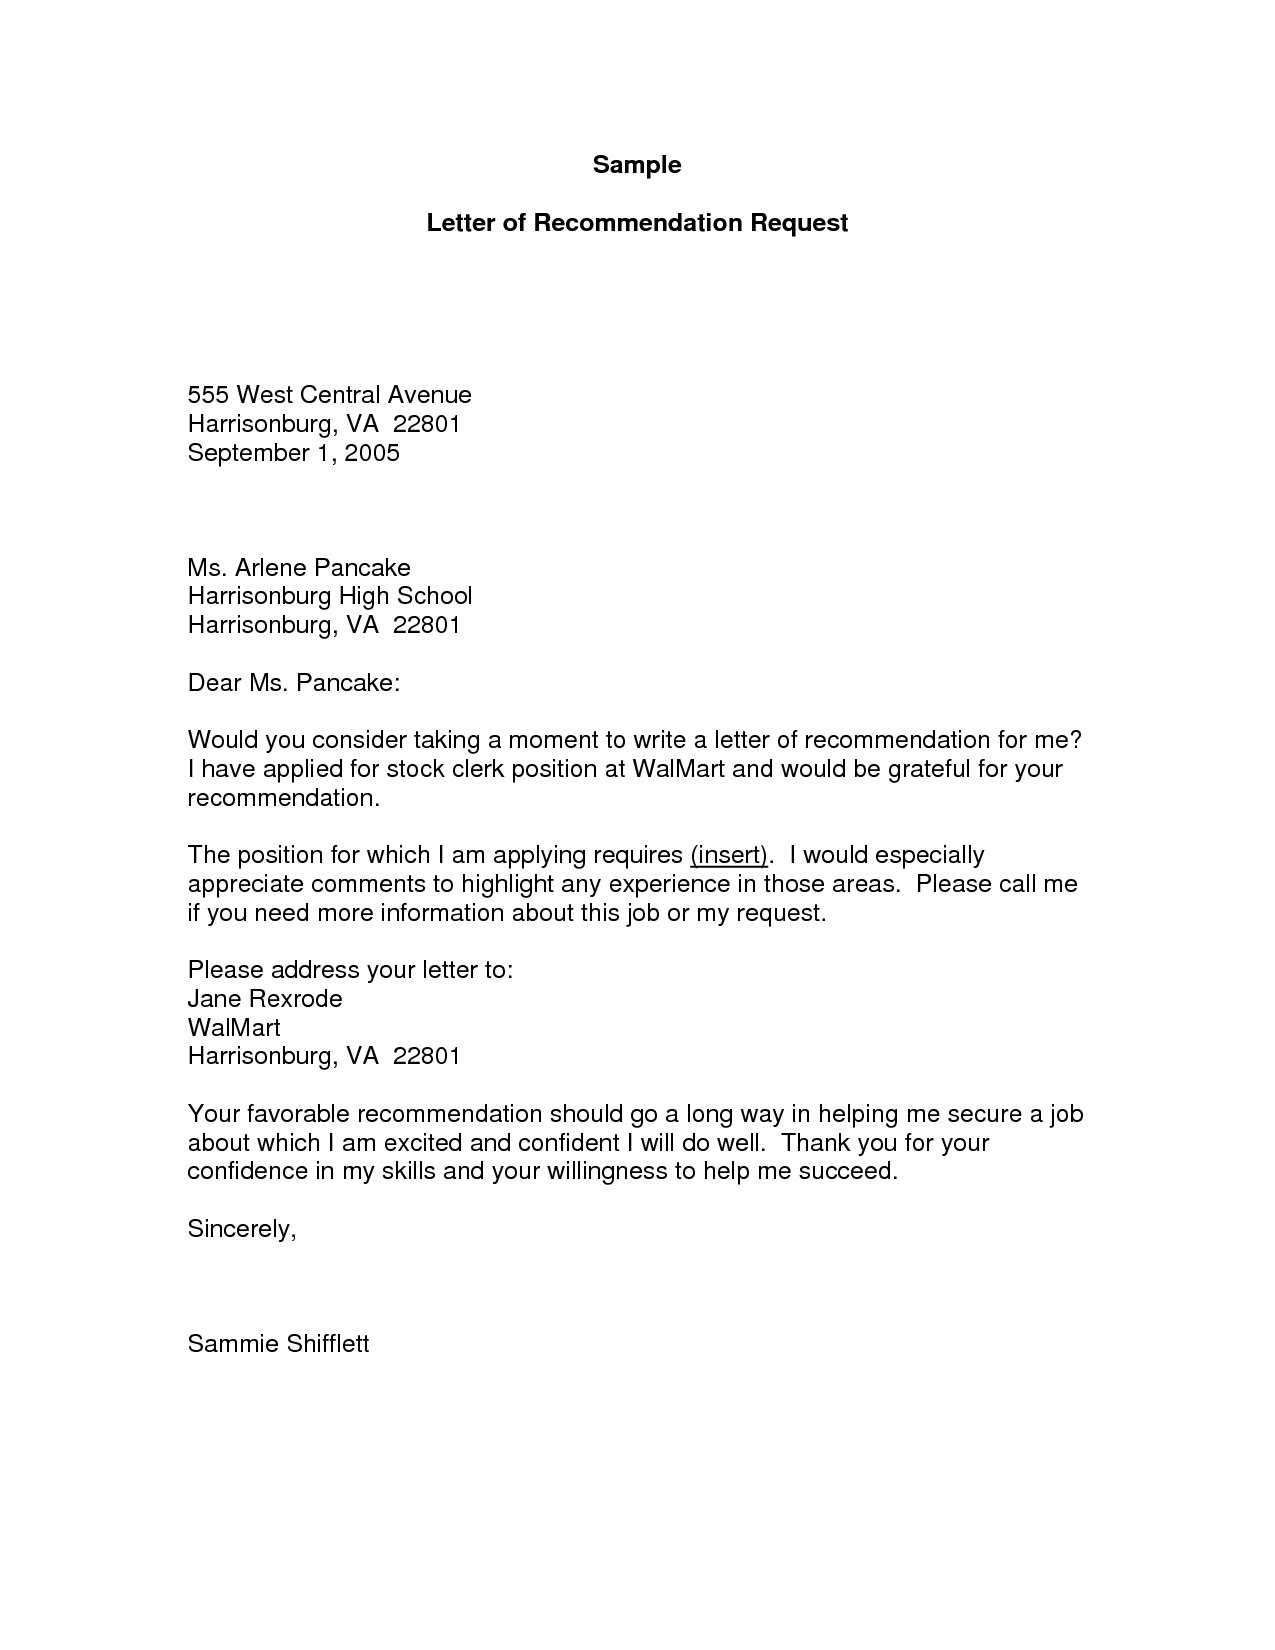 Letter Of Recommendation Request Template  Template Business For Letter Of Recommendation Request Template